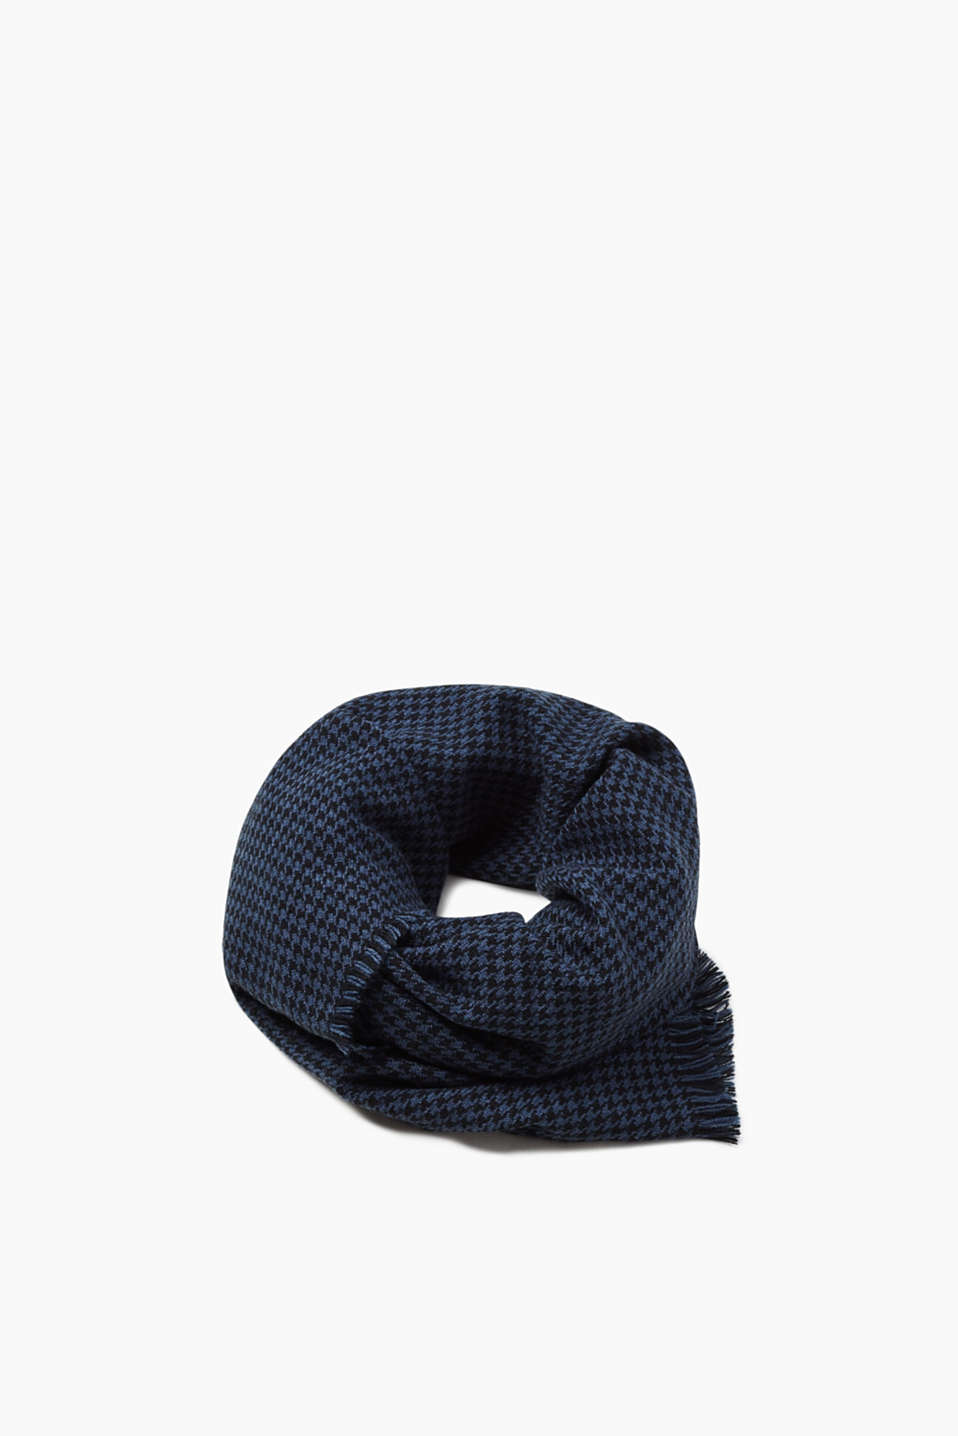 This scarf with a houndstooth pattern is stylish, soft and warming